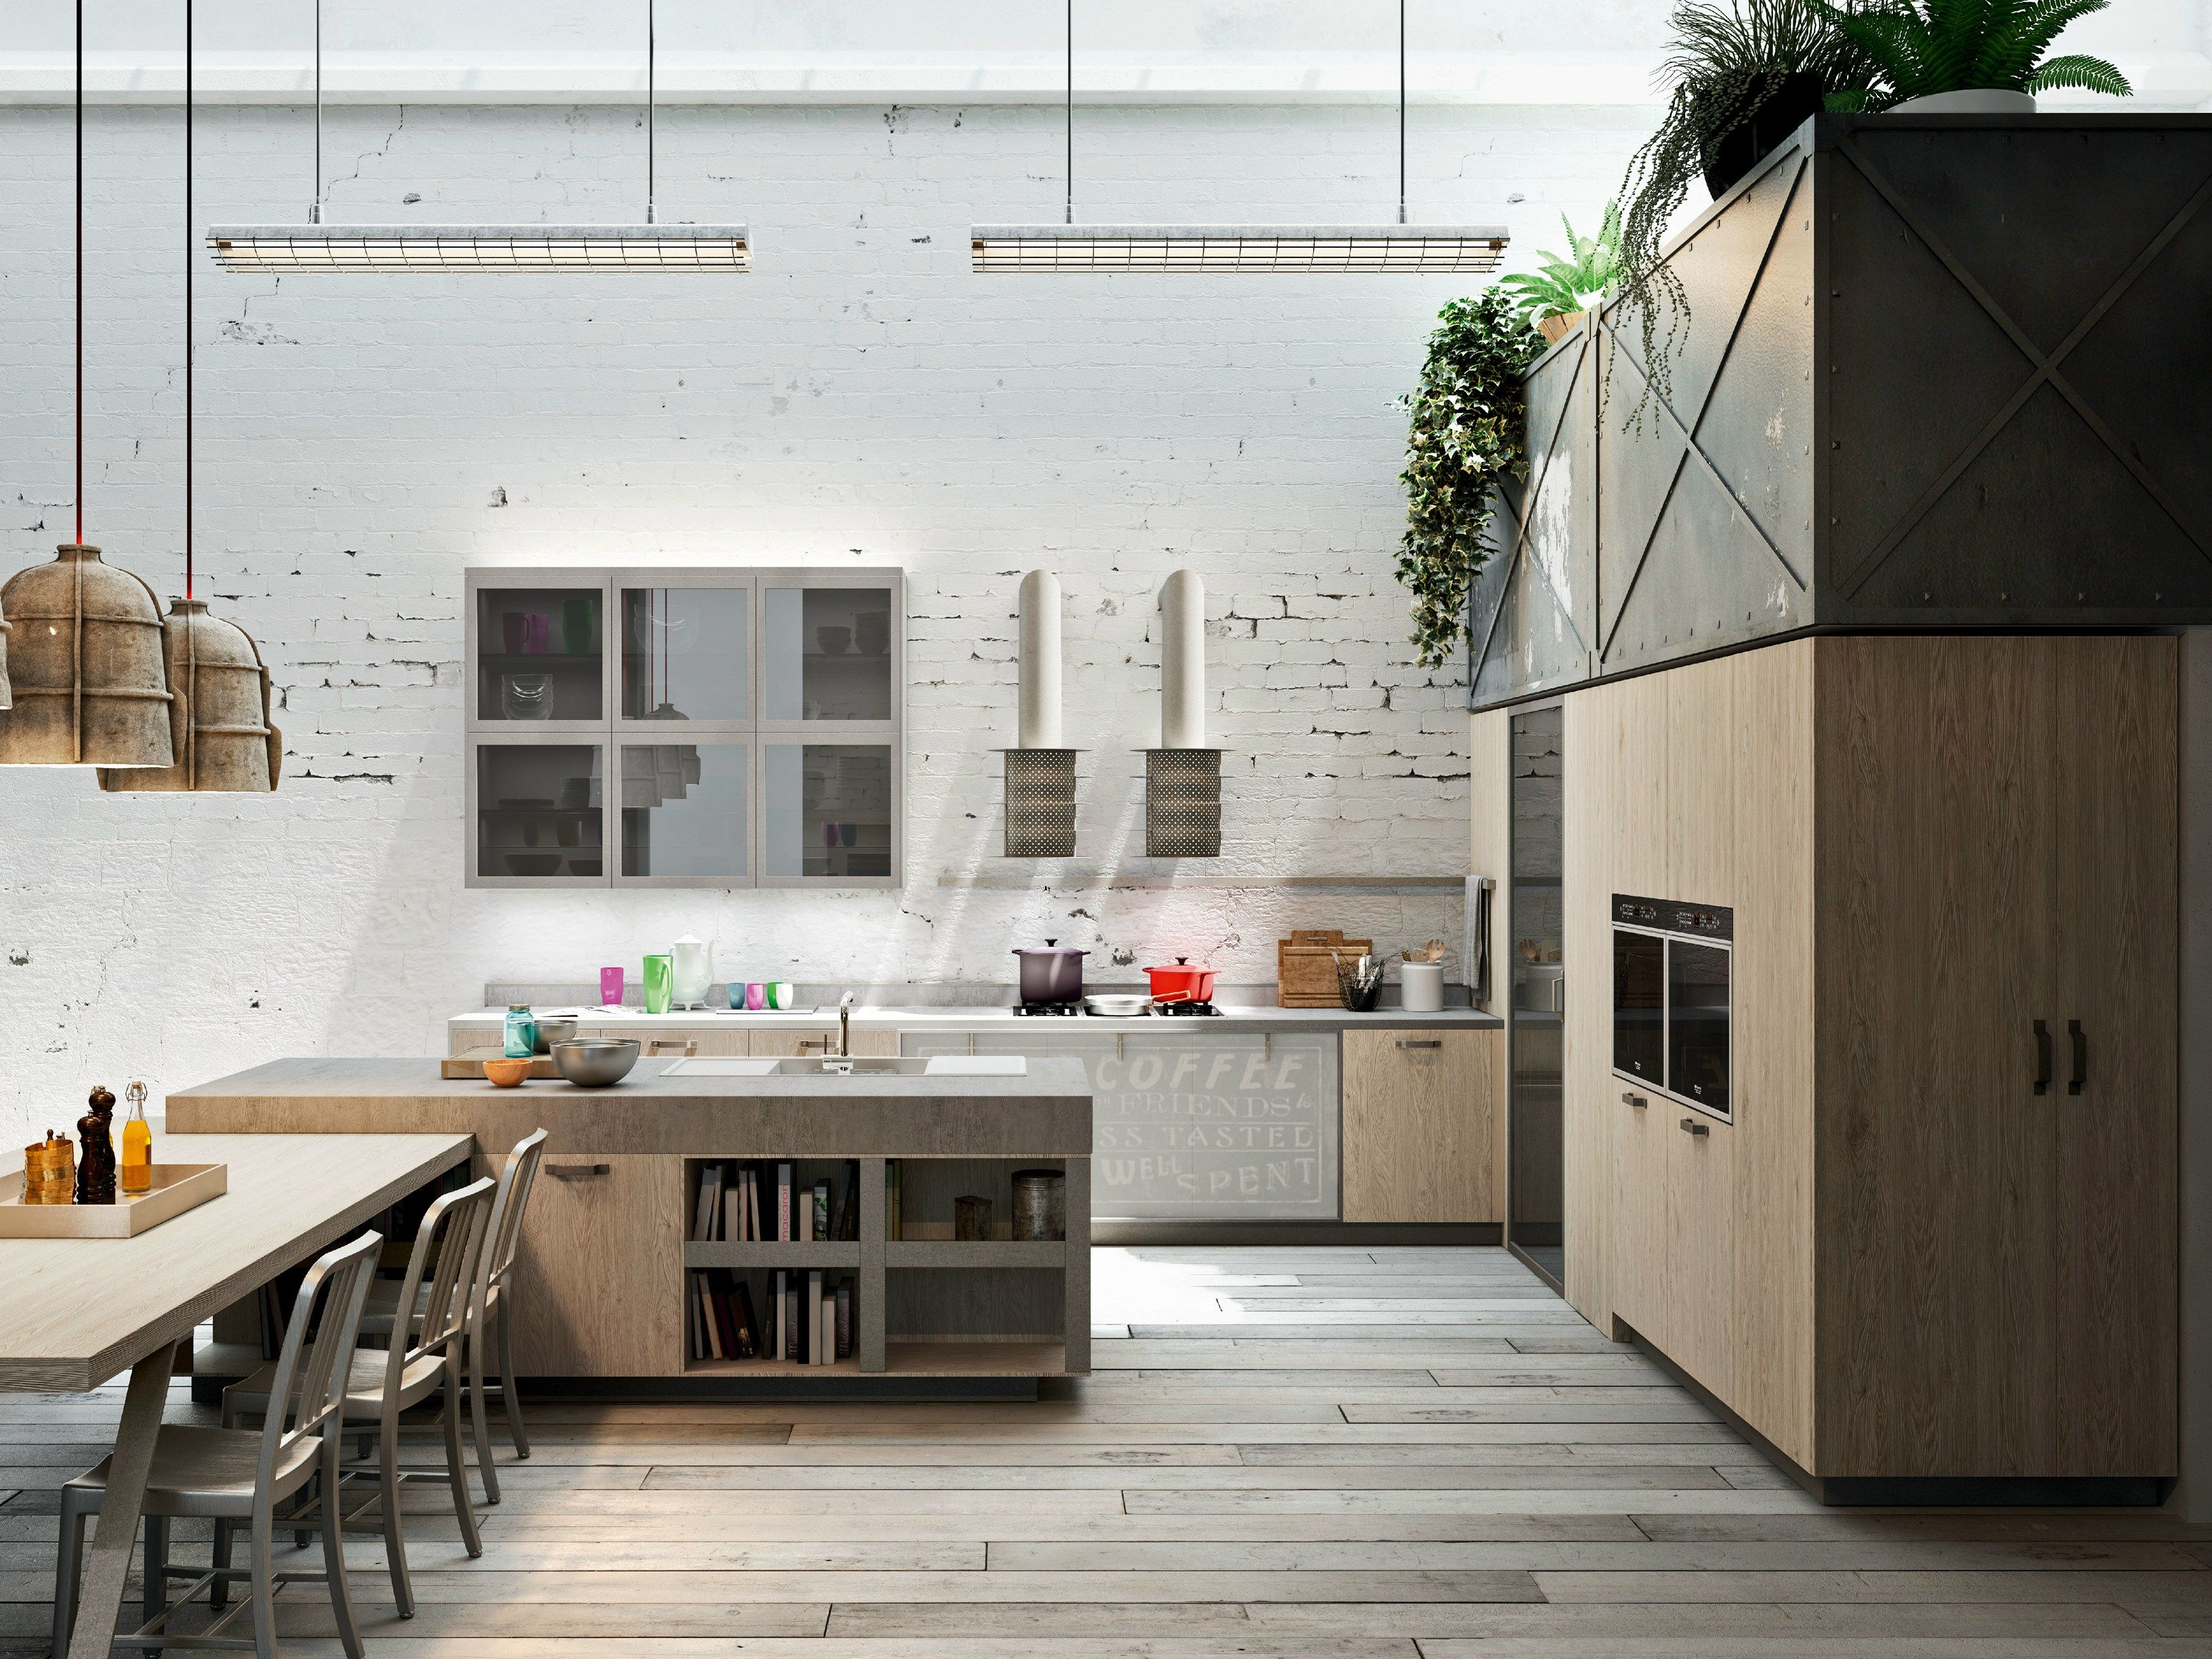 Mixing Modern & Retro Industrial Design | brain{pin?}storming for ...